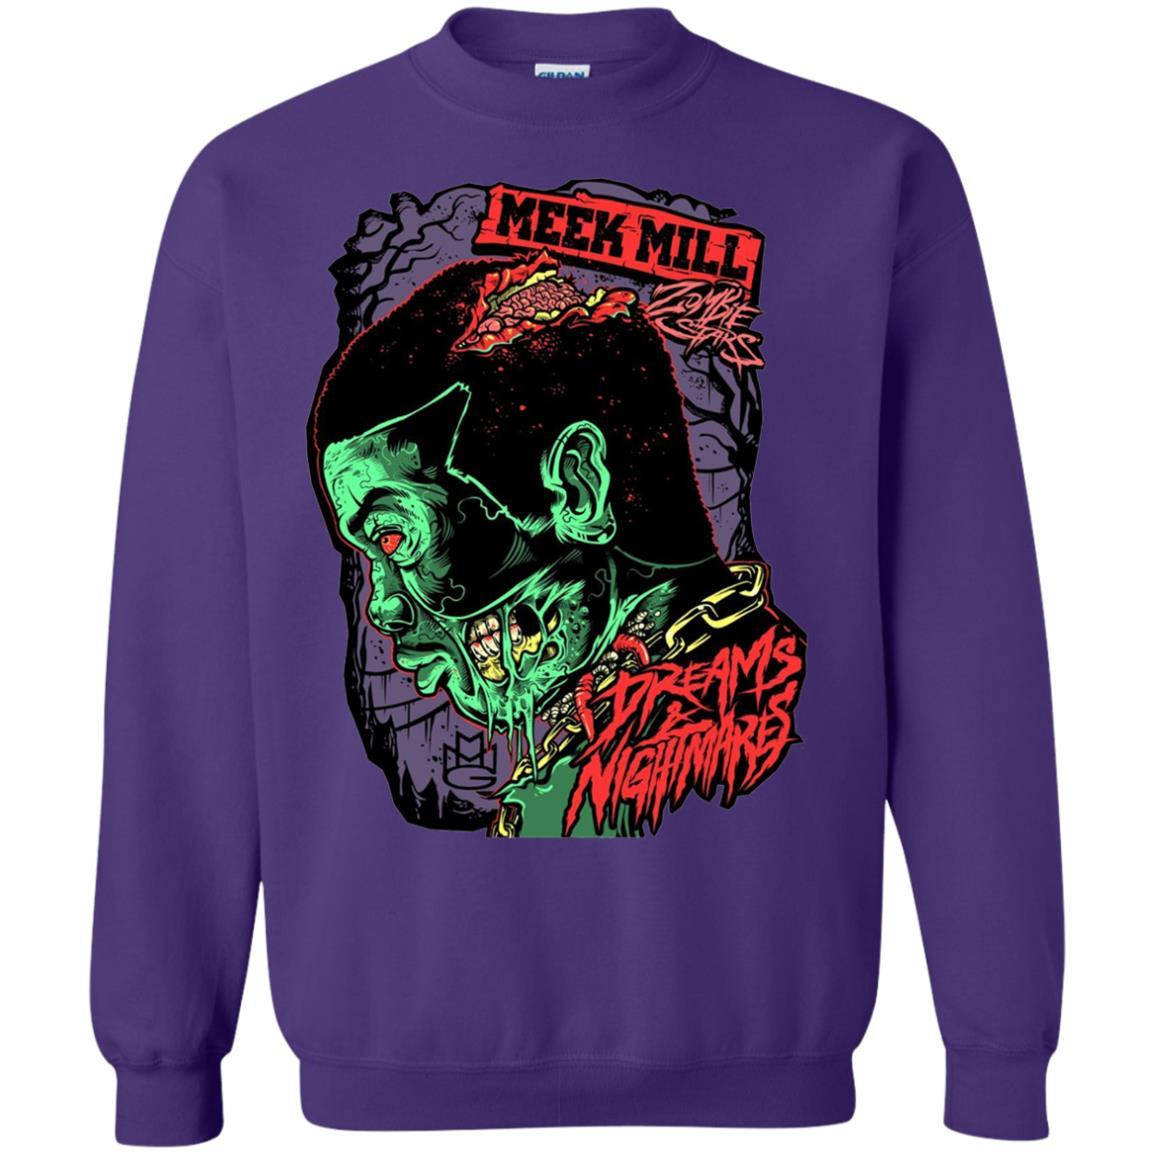 Meek Mill Zombie Tee Shirt Halloween - Crewneck Pullover Sweatshirt Purple / 5XL